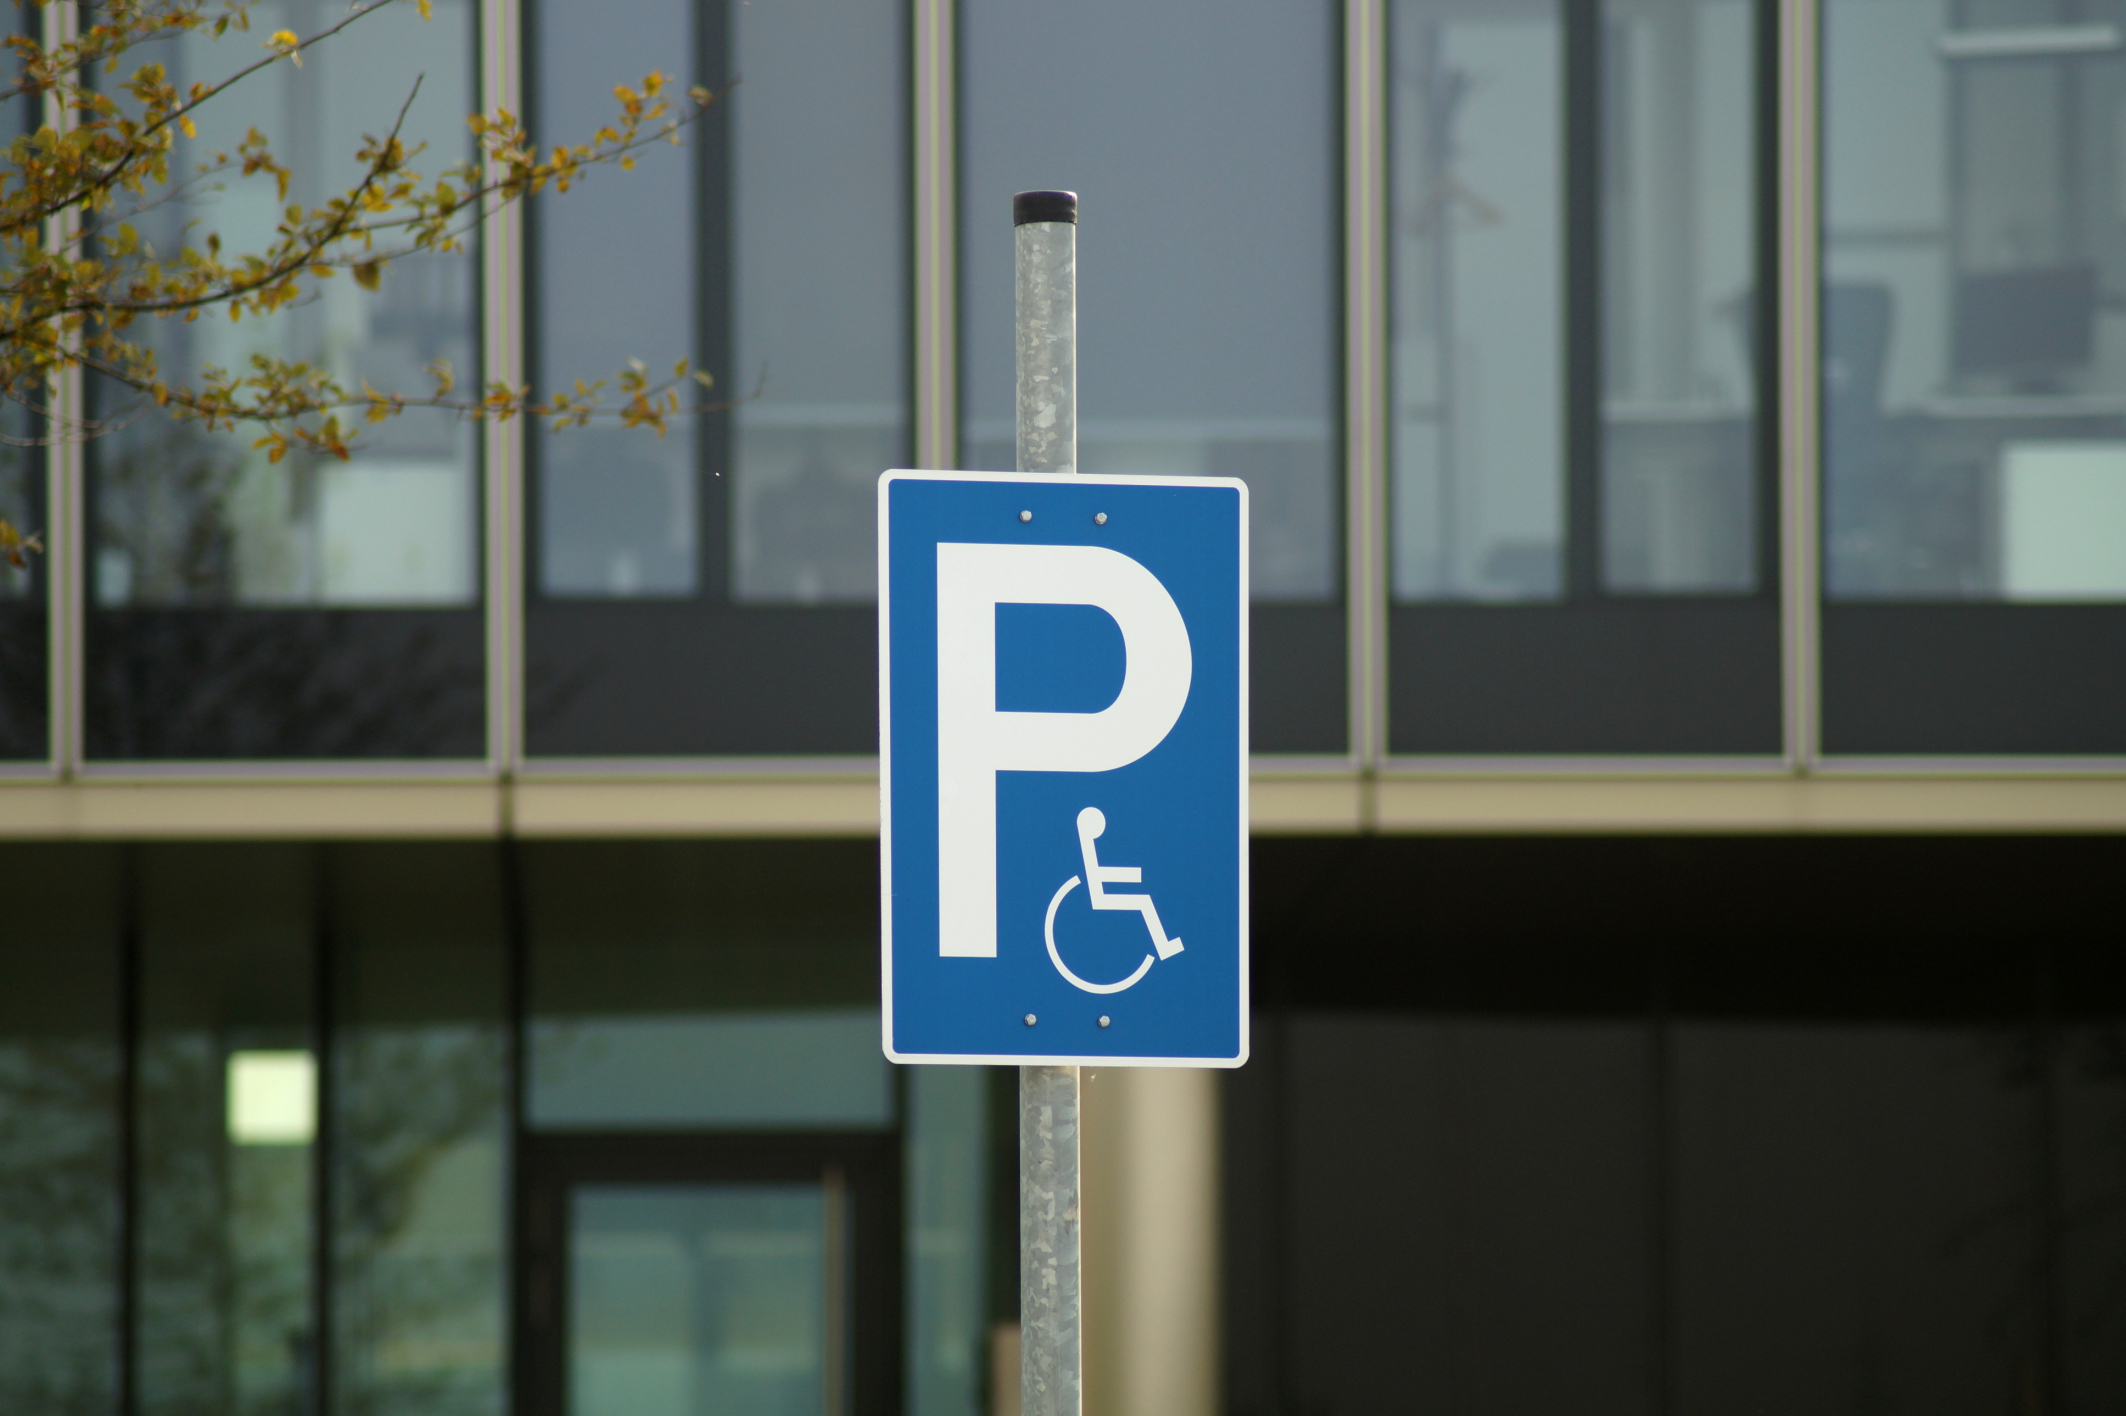 Police: Don't park in spaces marked for people with disabilities